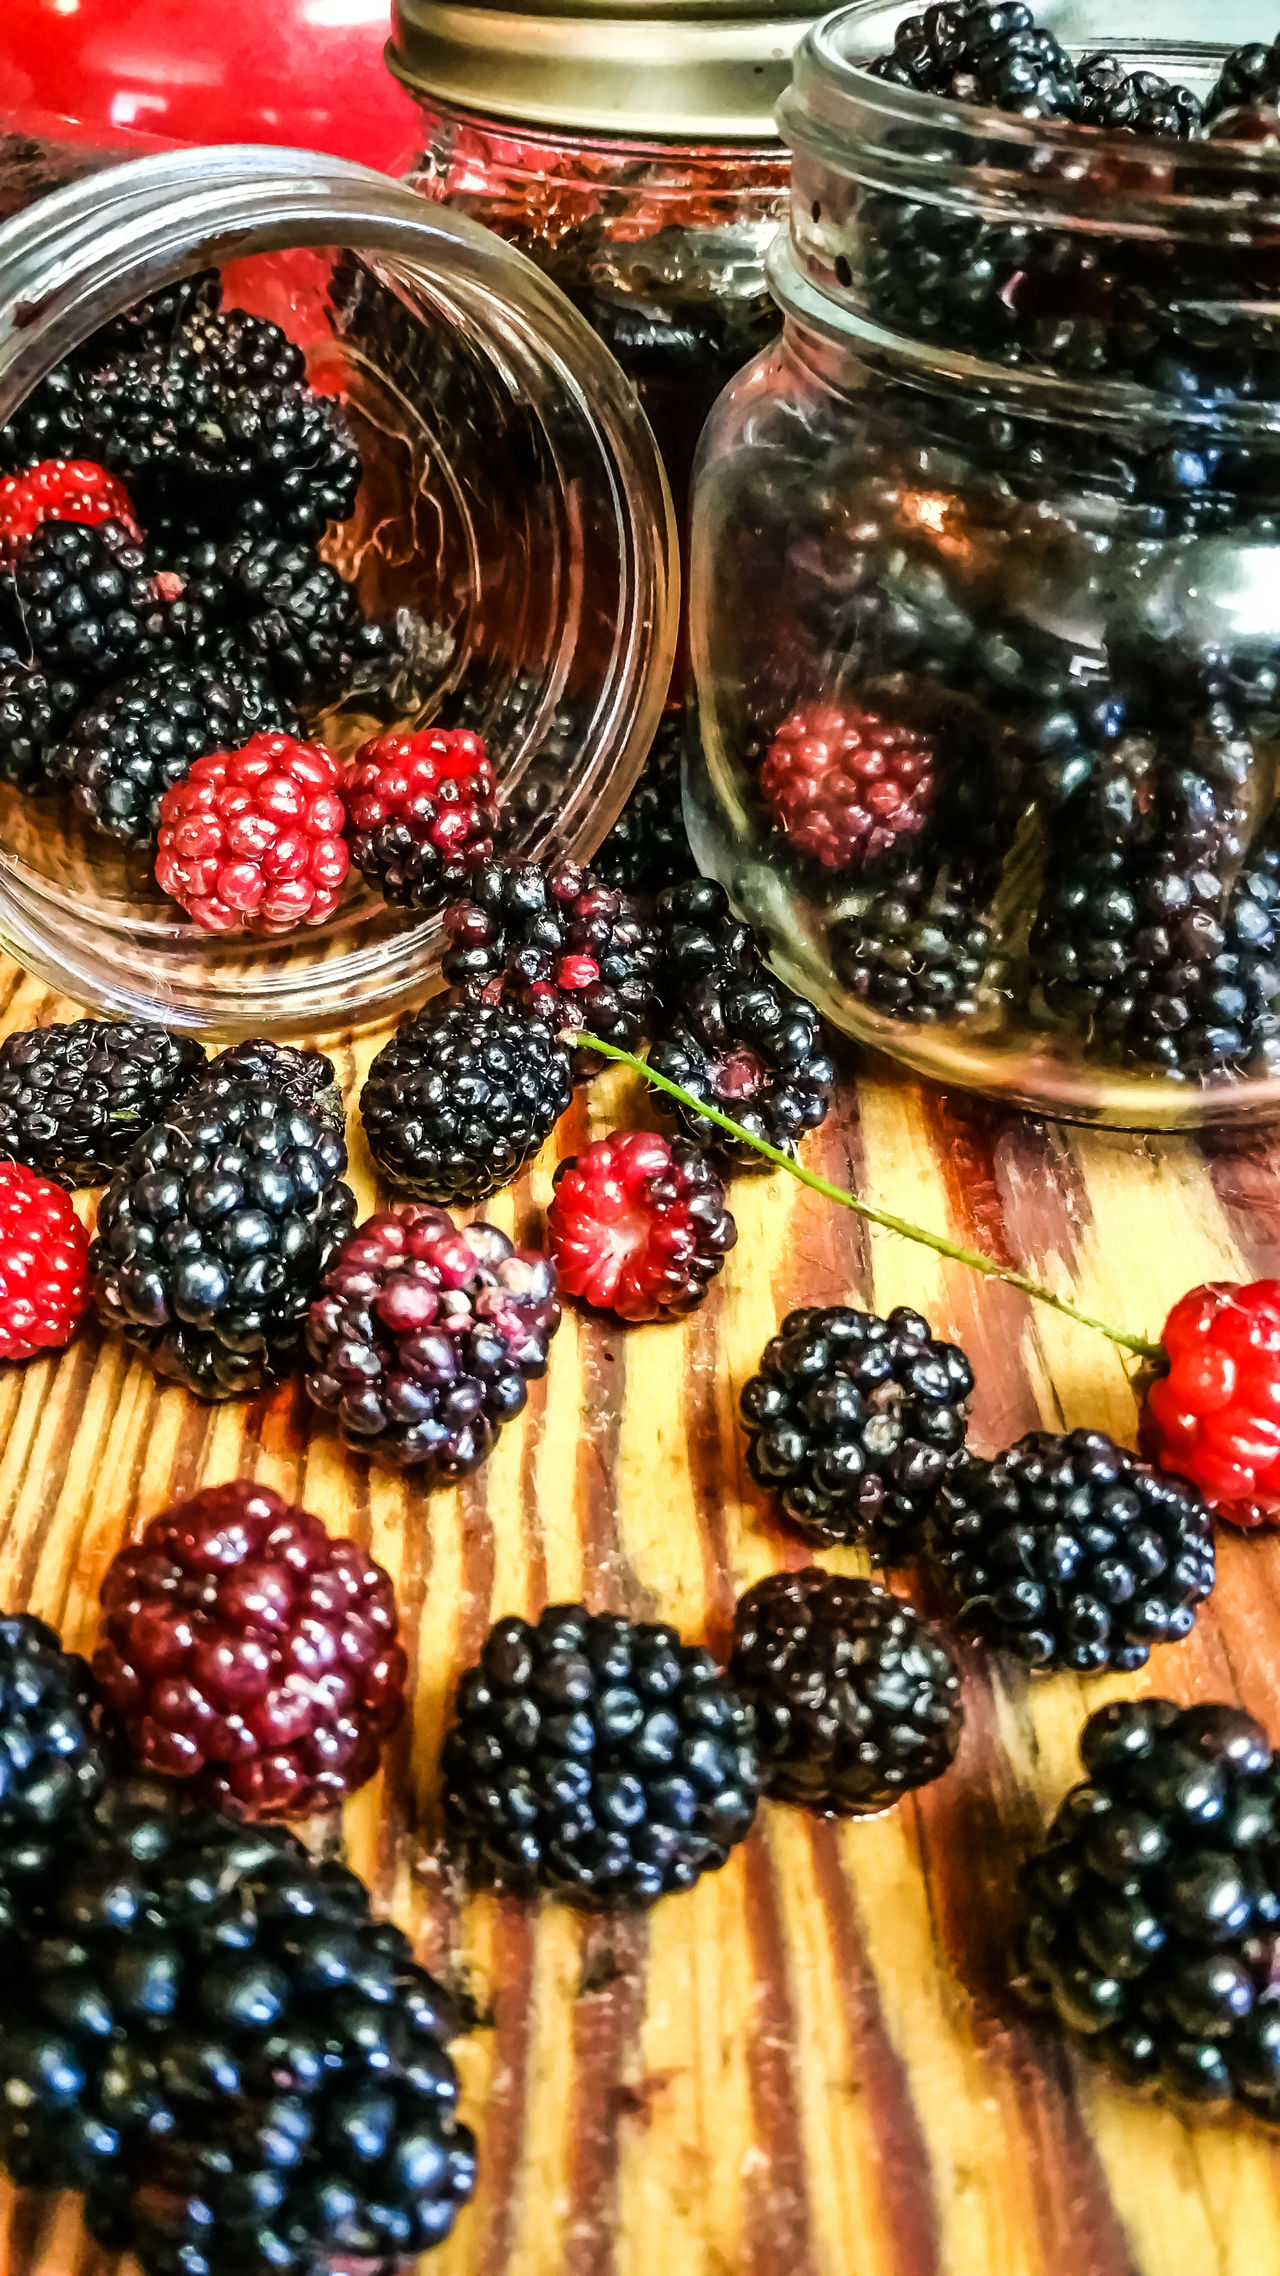 Fruit Blueberry Healthy Eating Food Freshness Food And Drink Indoors  Table No People Sweet Food Close-up Ready-to-eat Day Fresh Fruits Jar Berries Fresh Wild Berries Black Berries Dew Berries Canning Cooking Jelly Making Jam Wooden Visual Feast